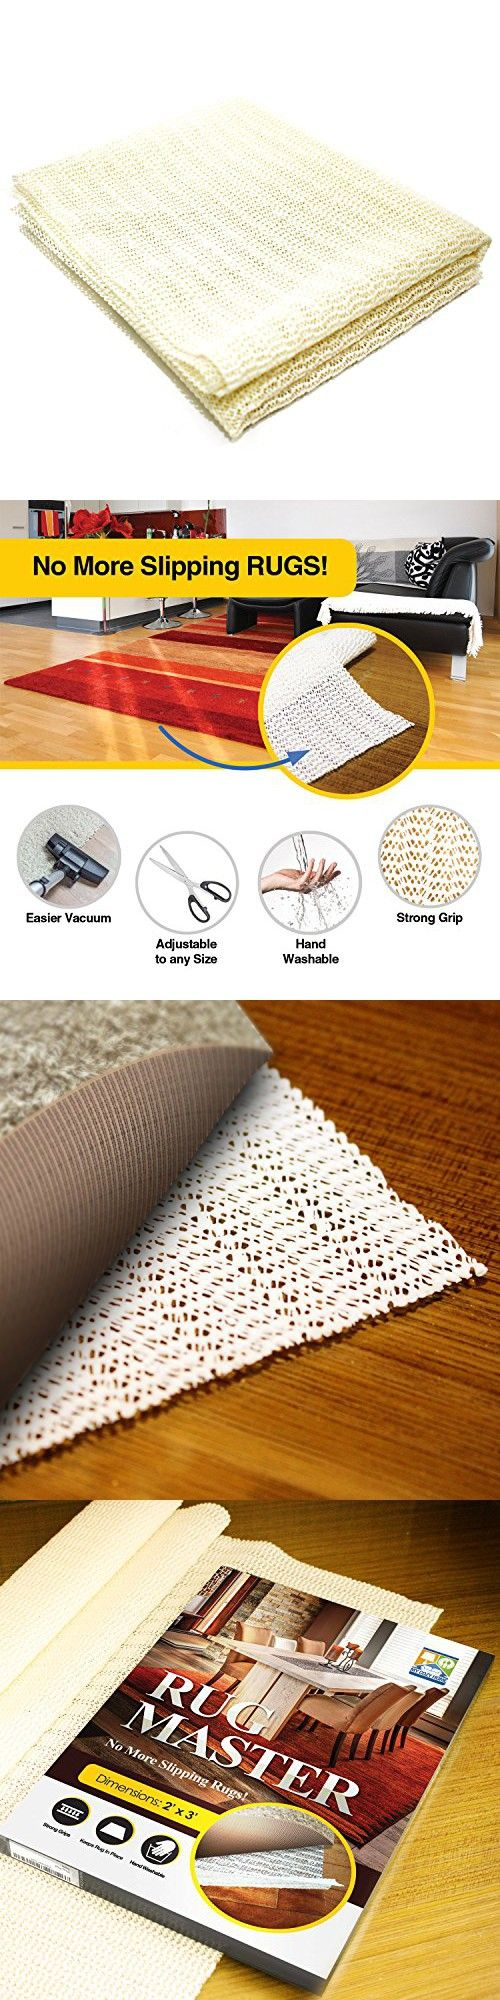 My Cozy Home Rug Gripper, 2x3-Feet Area, Washable Non Slip Rug Pad